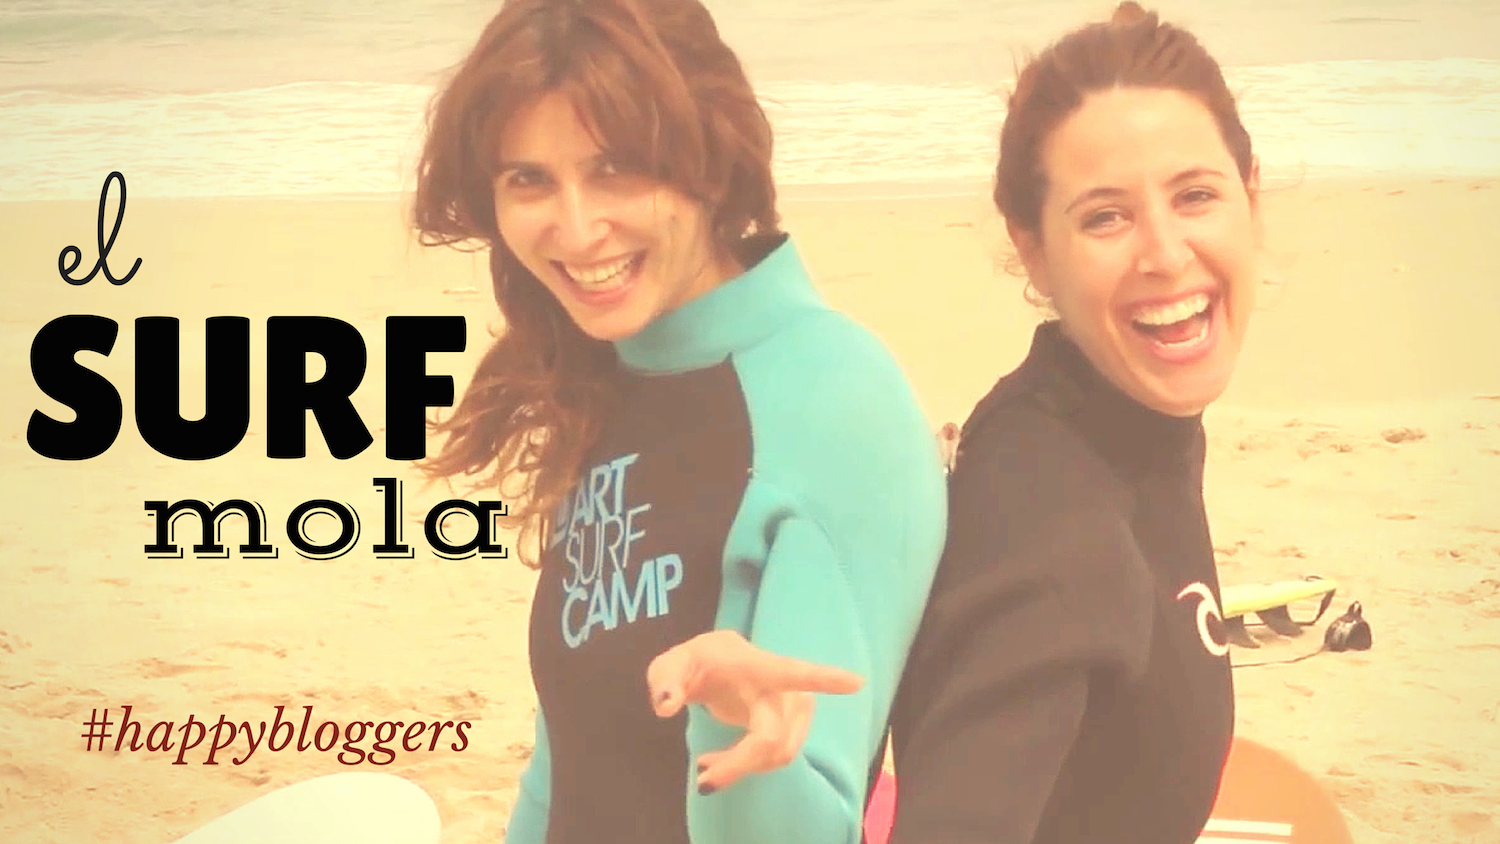 descalzaporelparque-youtube-ArtSurfCamp-happybloggres-surf